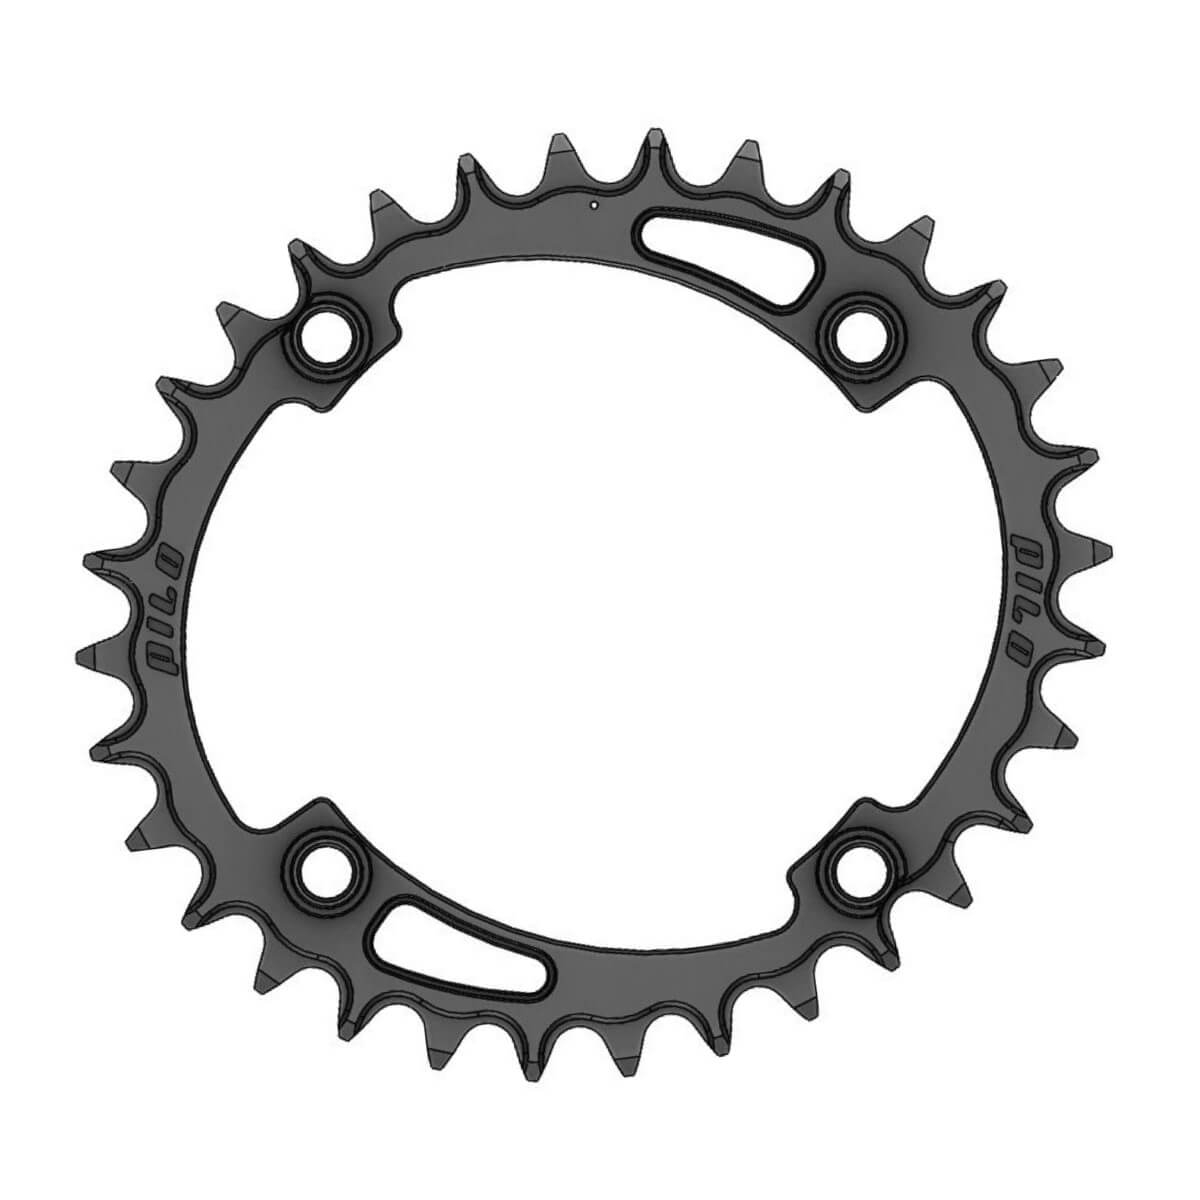 C30 Pilo Chainring Elliptic Narrow Wide 32T for Shimano 104BCD Asymmetric